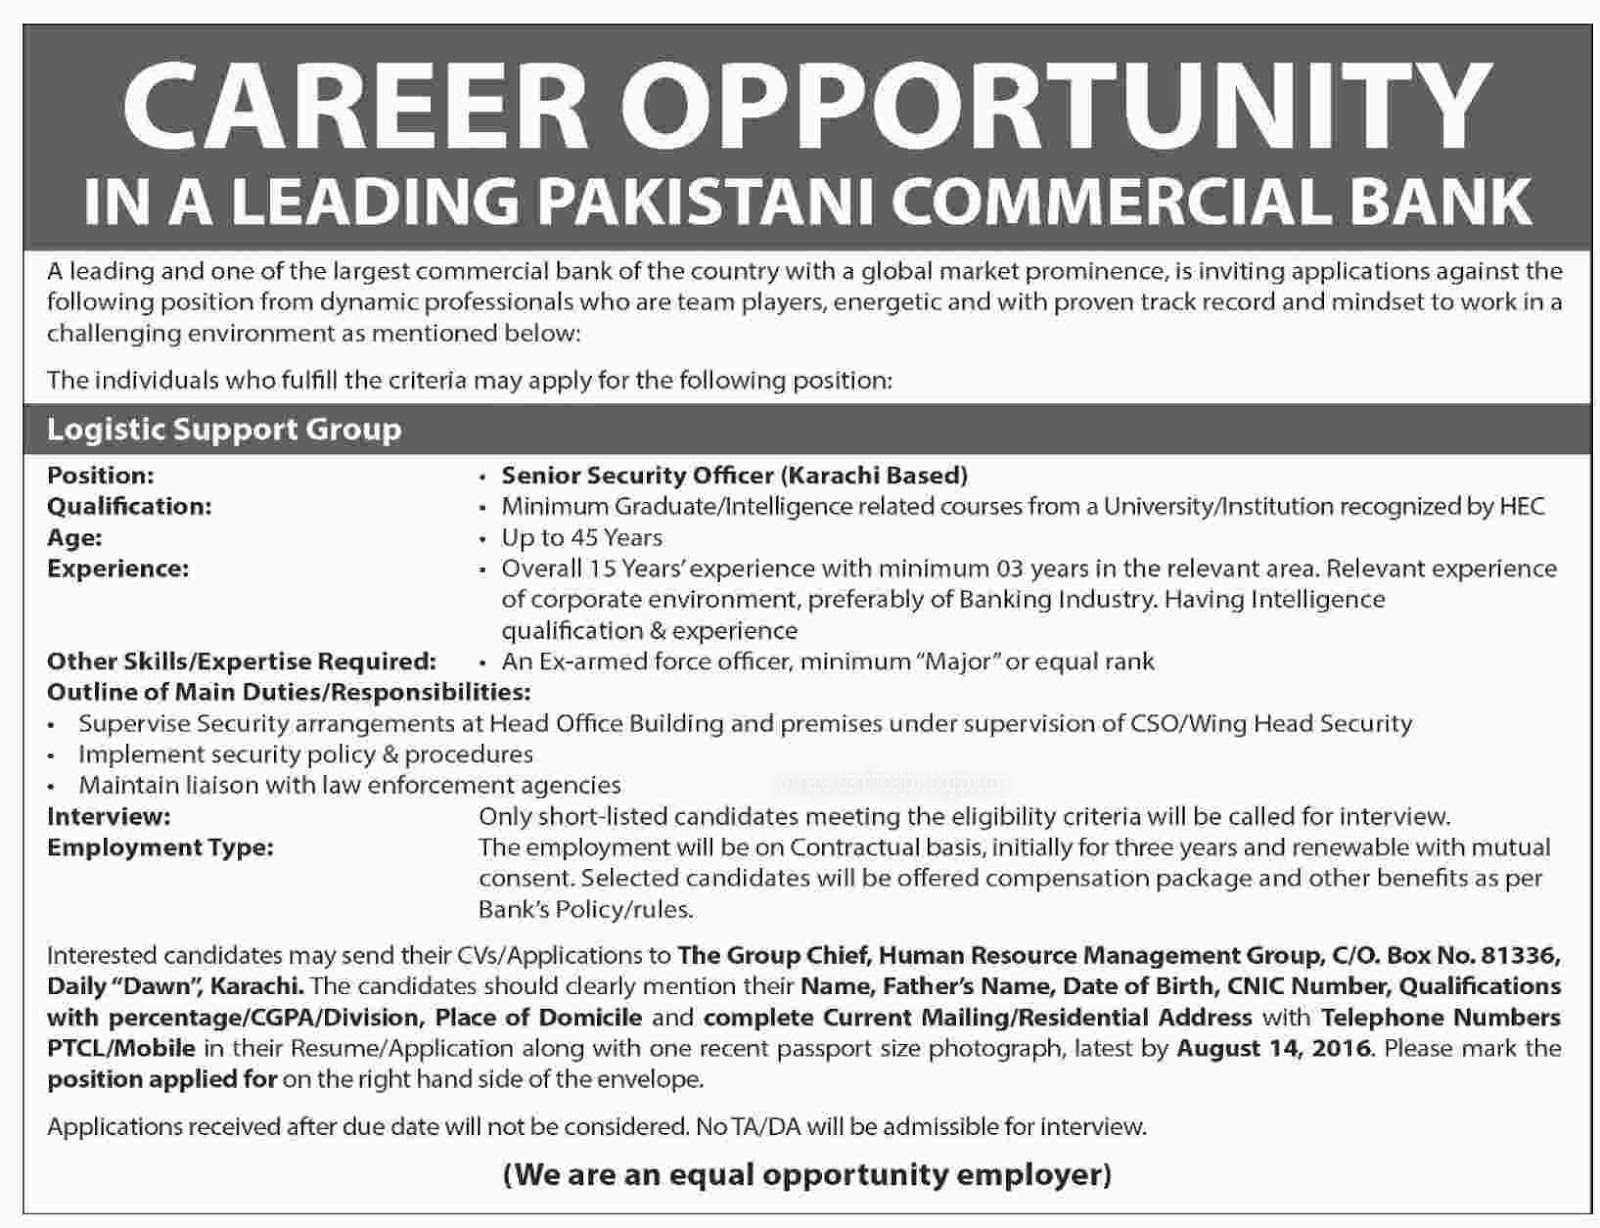 JObs in Logistic Support Group Pakistani Commercial Bank 2016